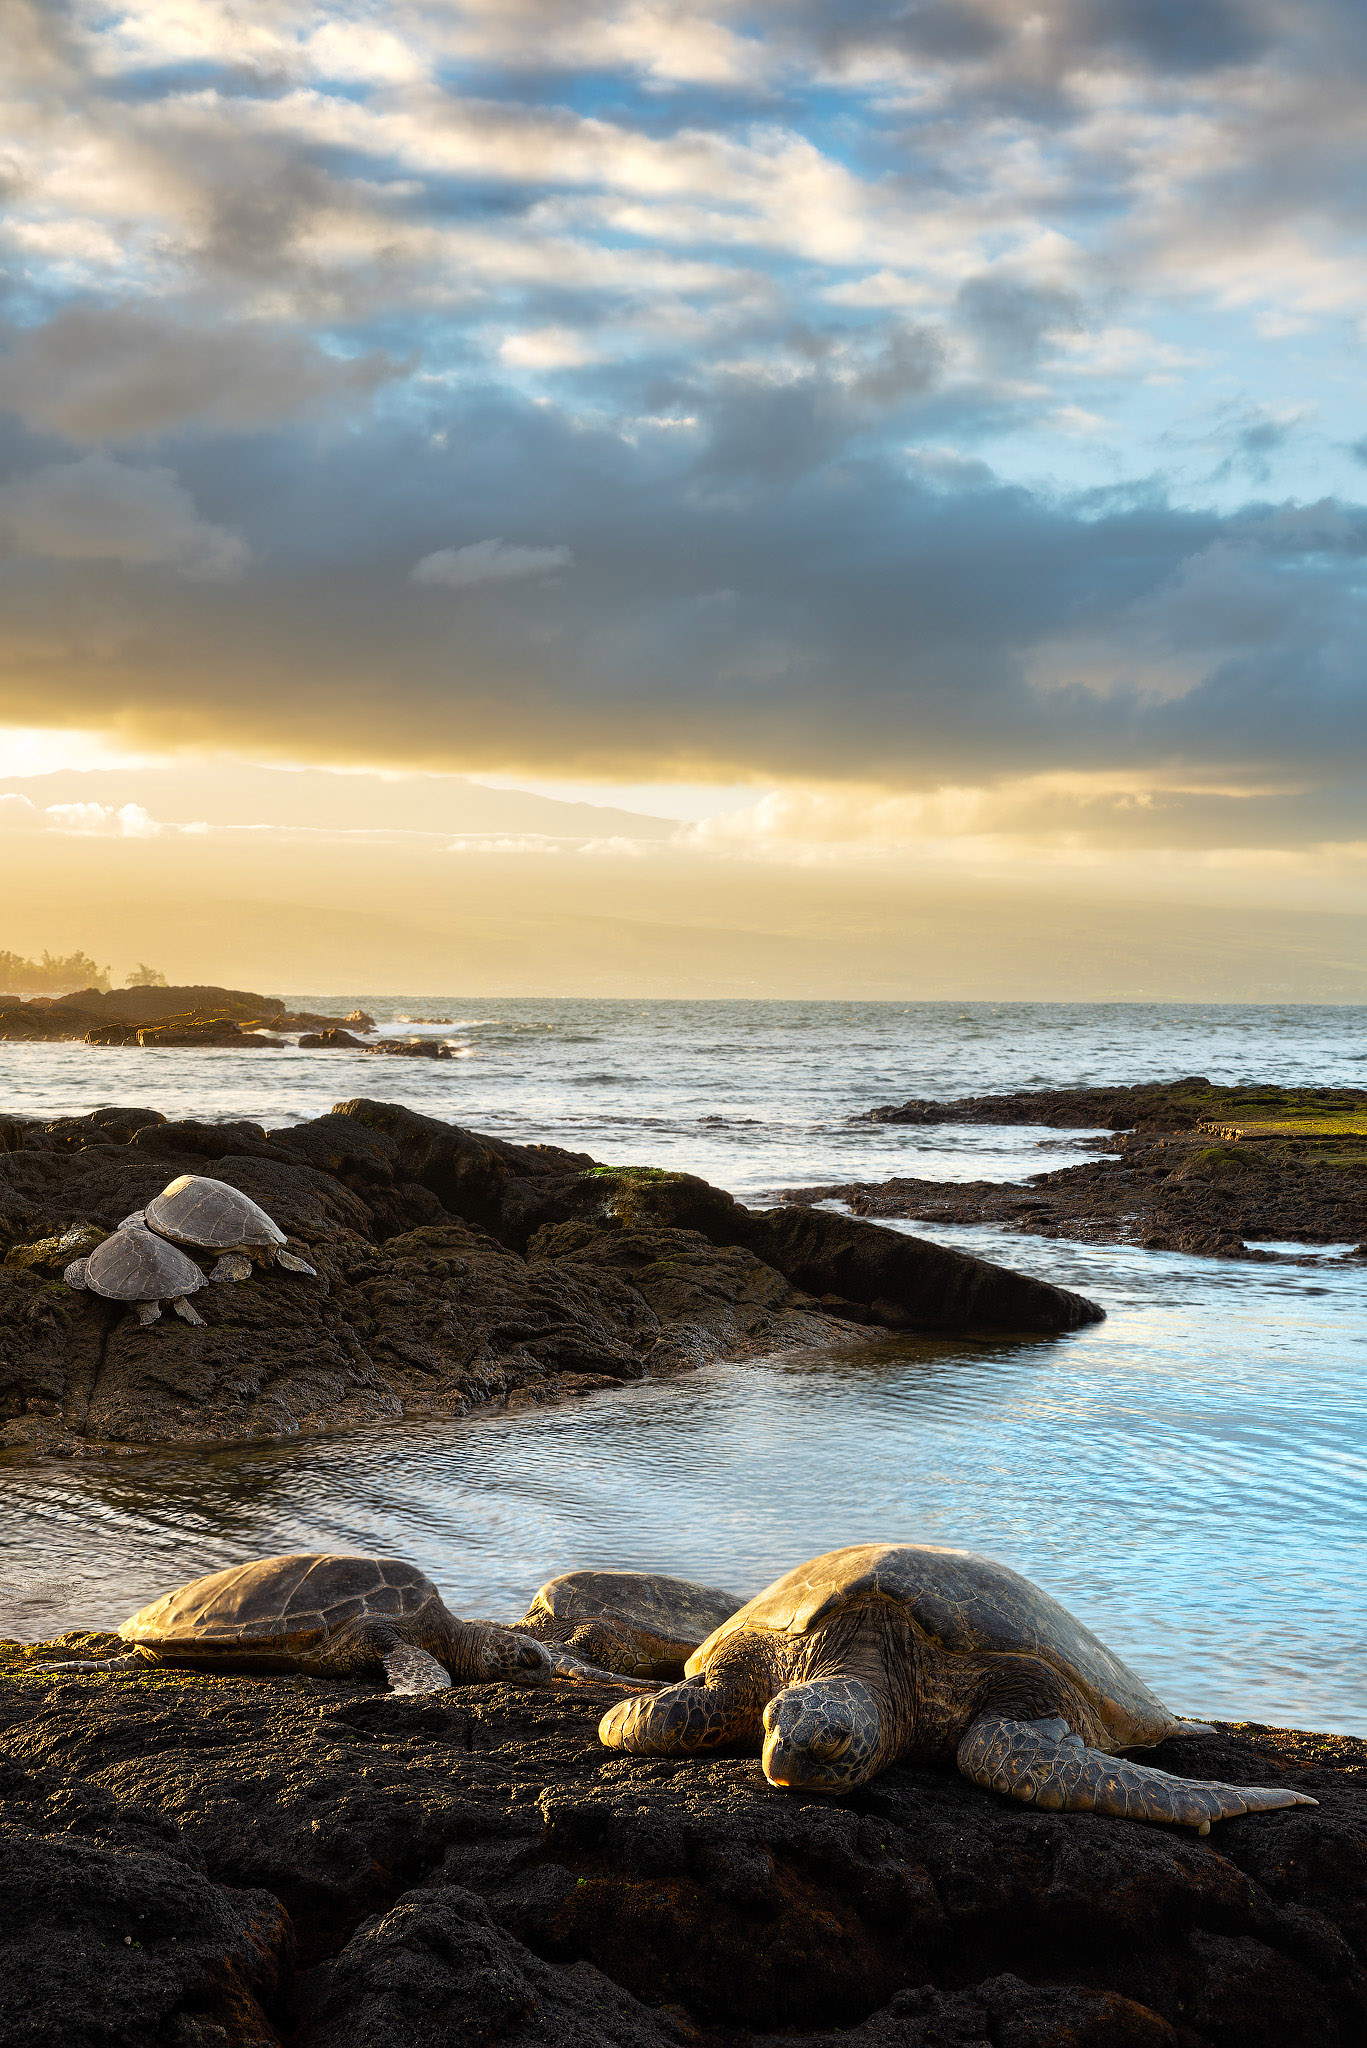 In this photo 5 Honu (Hawaii green sea turtles) rest on the warm lava rock during sunset. The dramatic clouds made for a compelling...